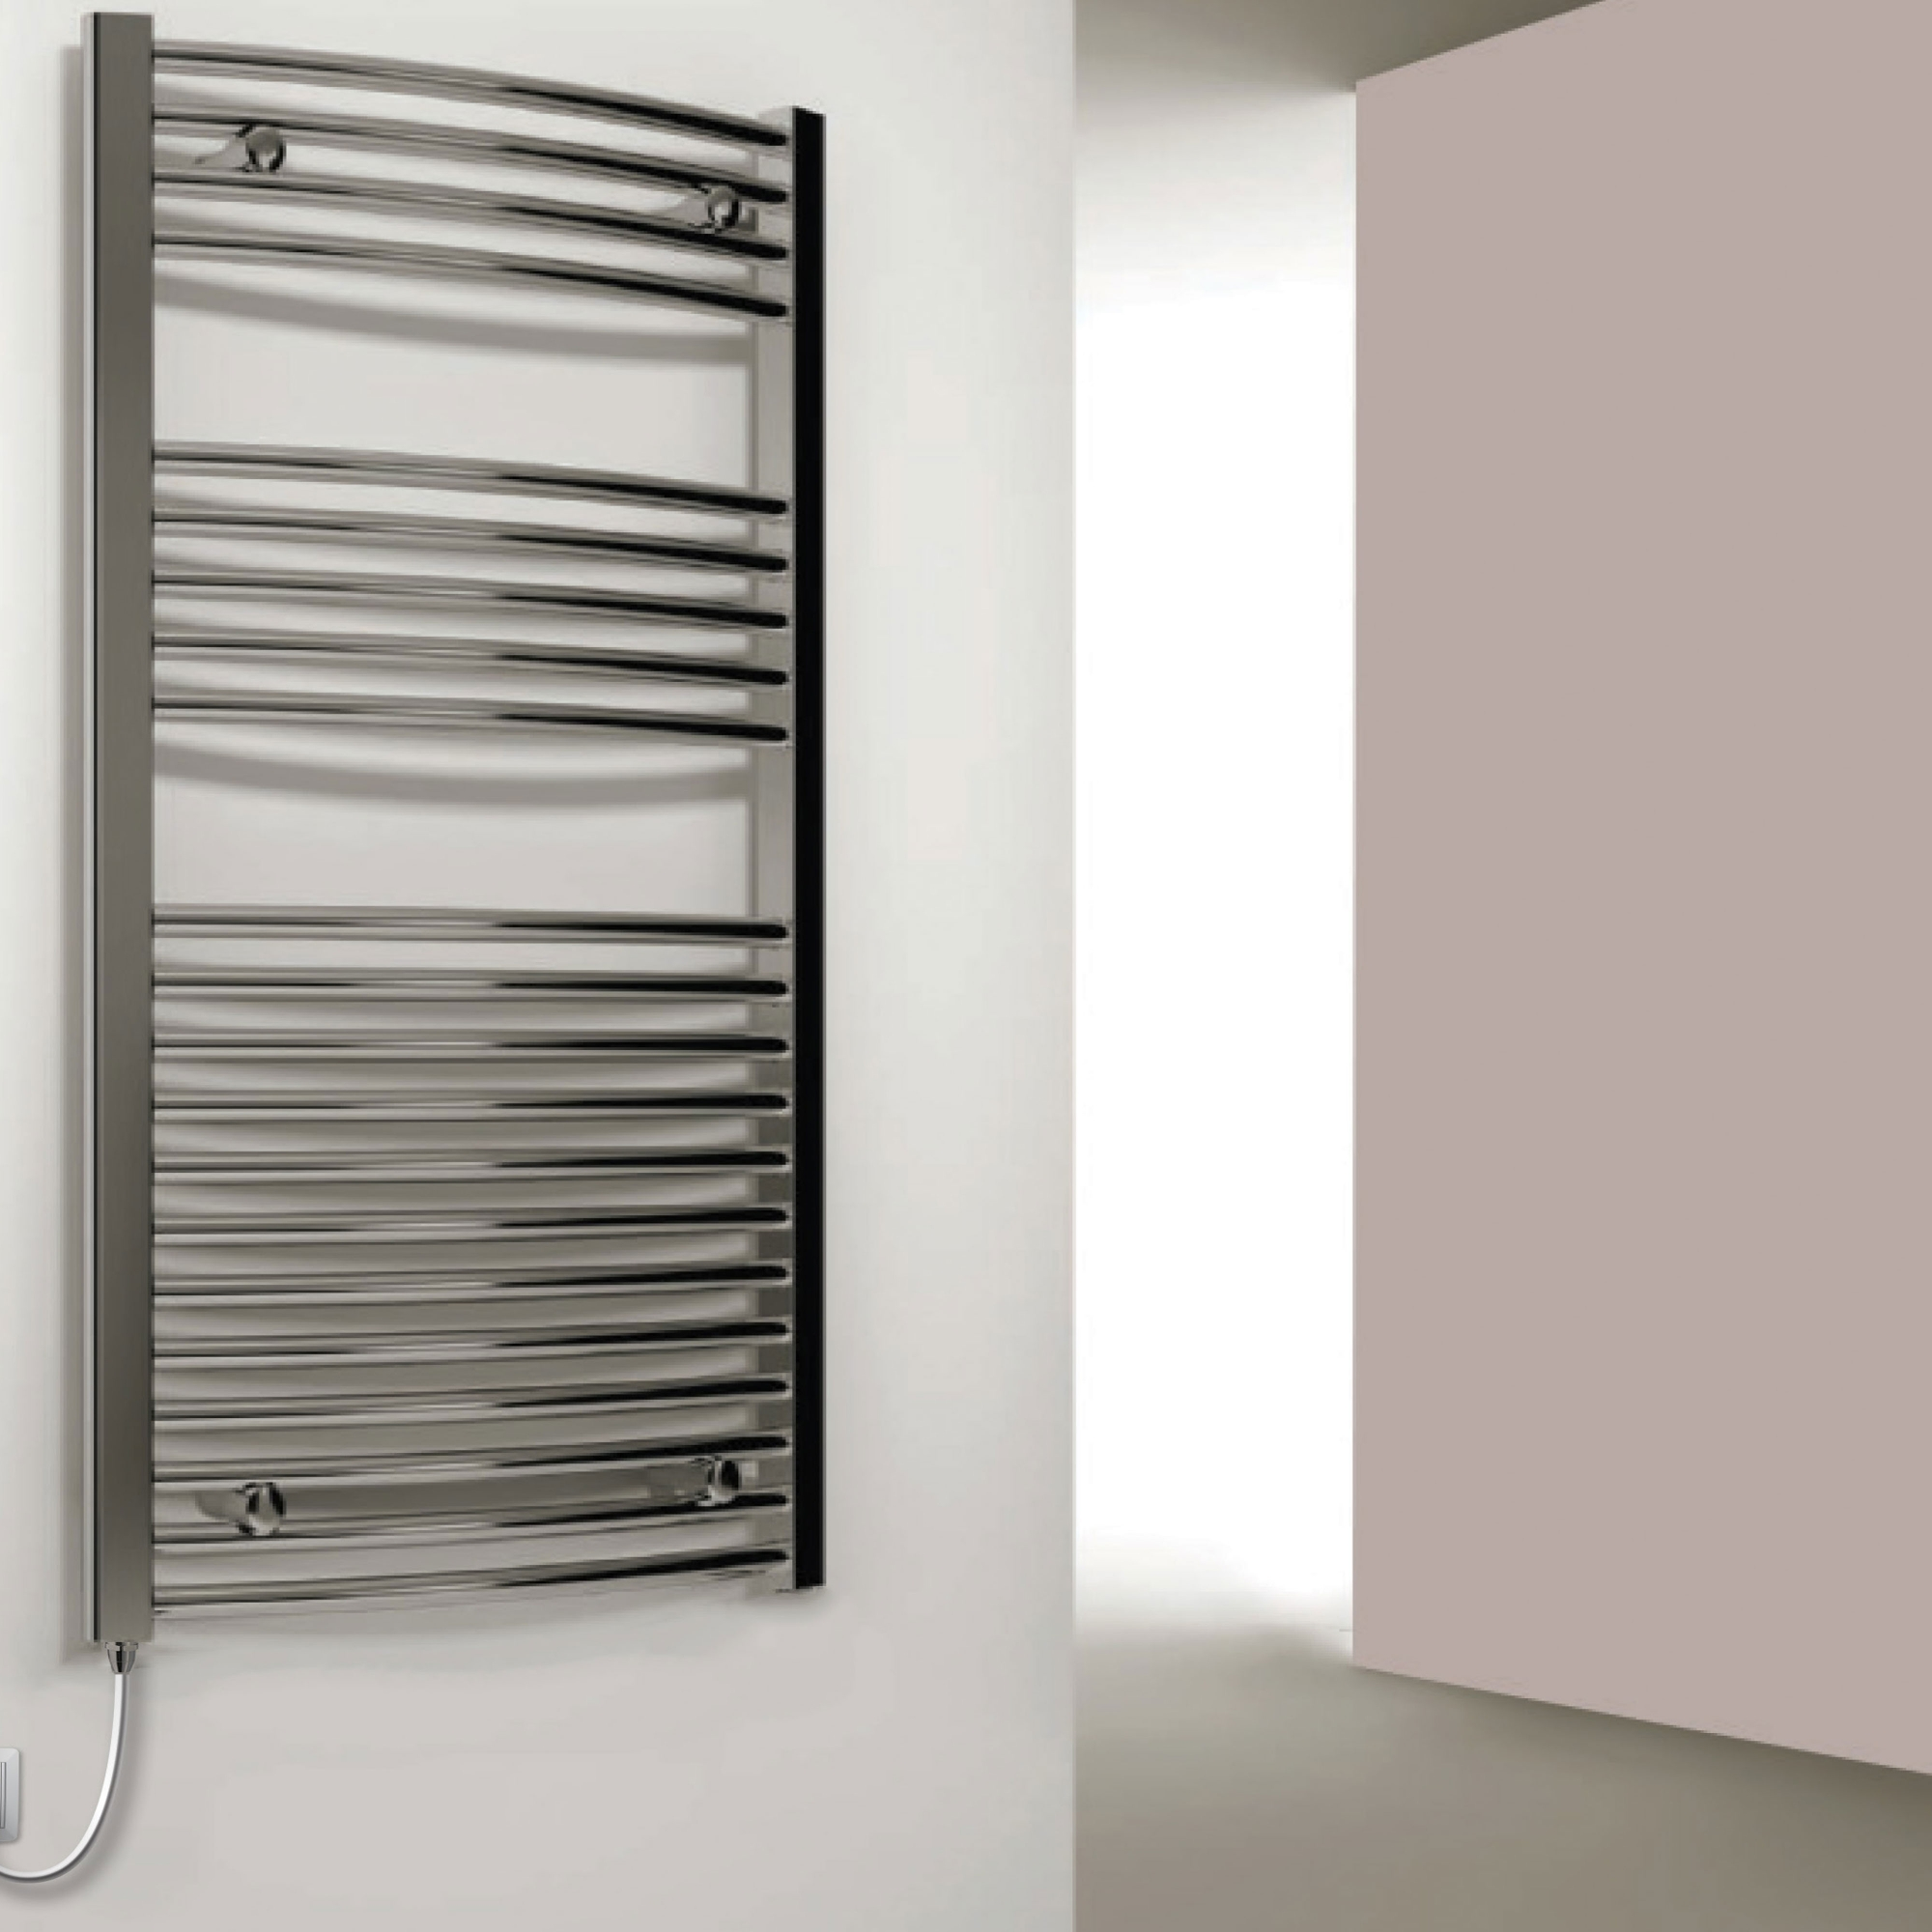 Reina Capo Curved Electric Heated Towel Rail 1000mm H x 600mm W Chrome-0